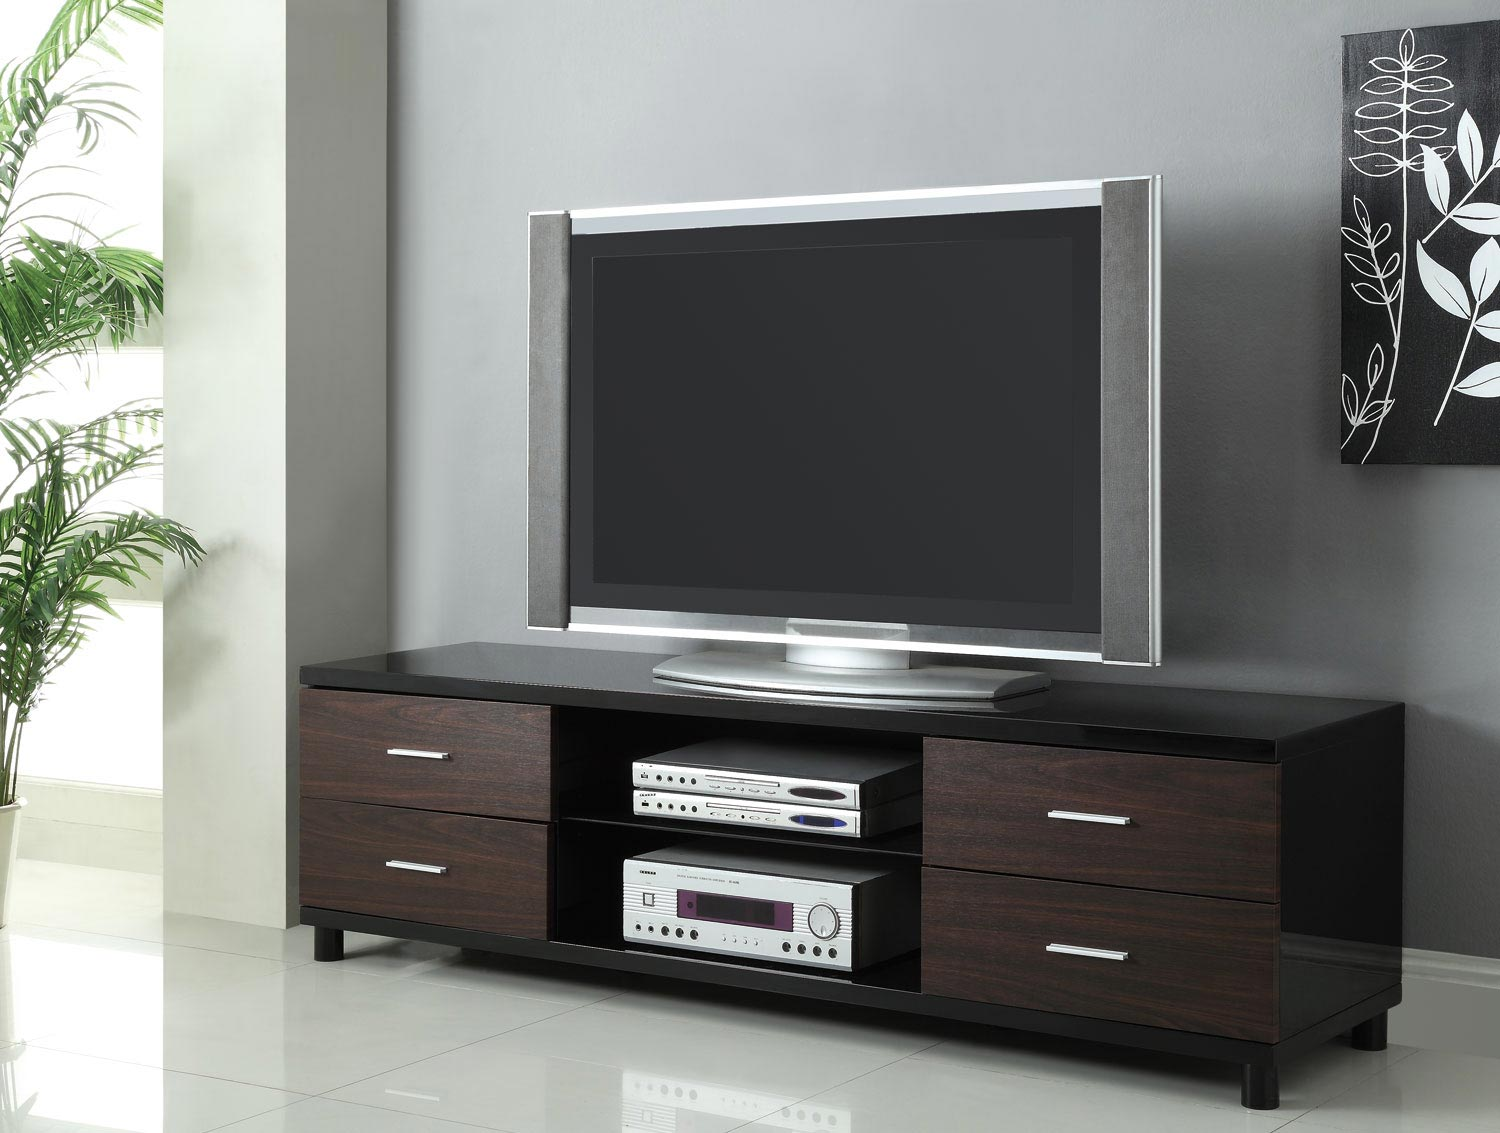 Coaster 700826 TV Stand - Black